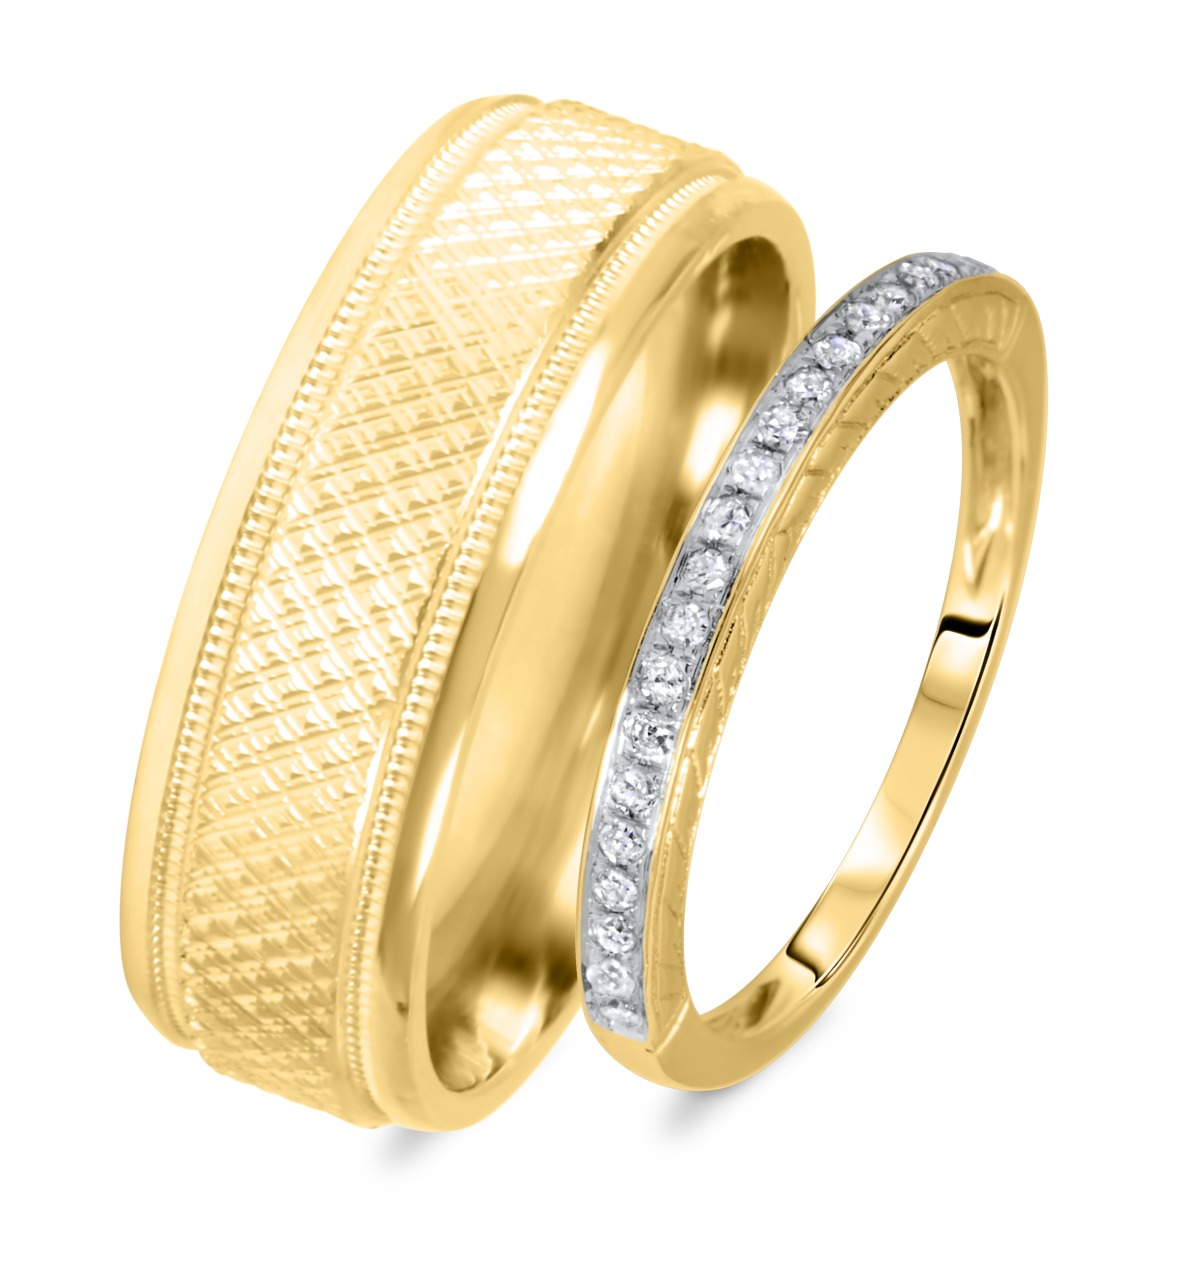 1/8 Carat T.W. Rounds Cut Diamond His And Hers Wedding Band Set 14K Yellow Gold